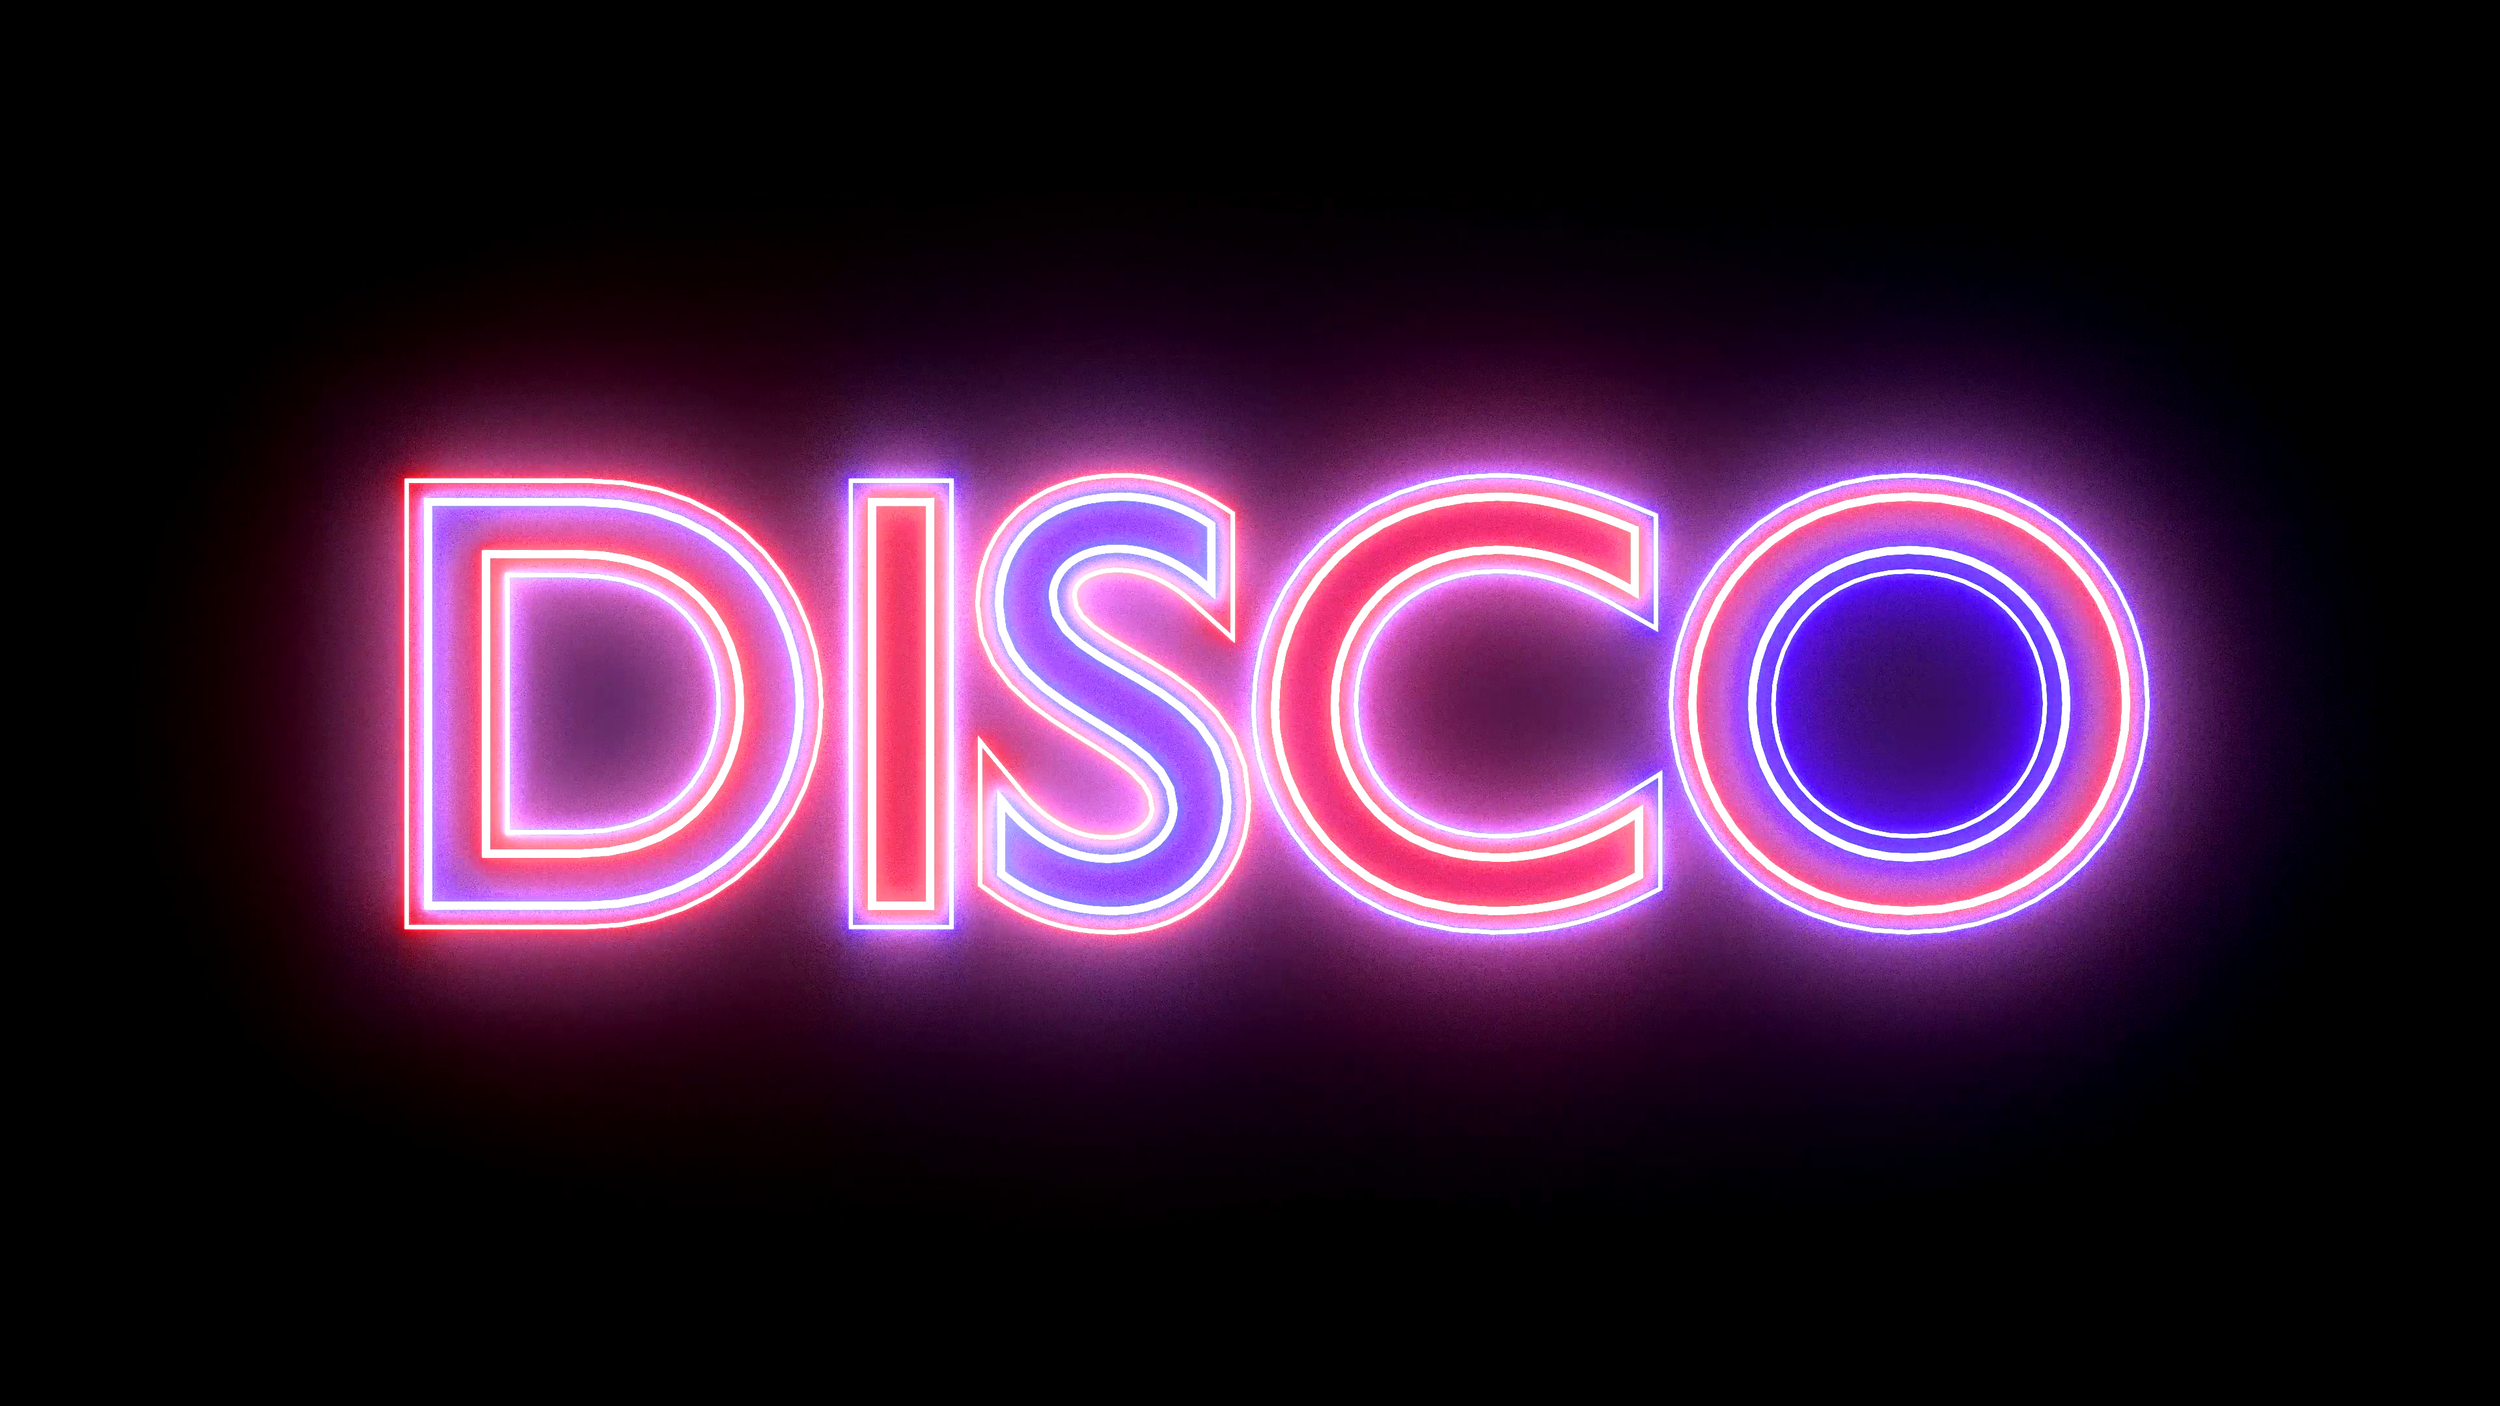 disco-neon-sign-lights-logo-text-glowing-multicolor-4k_njotifsc__F0004.png